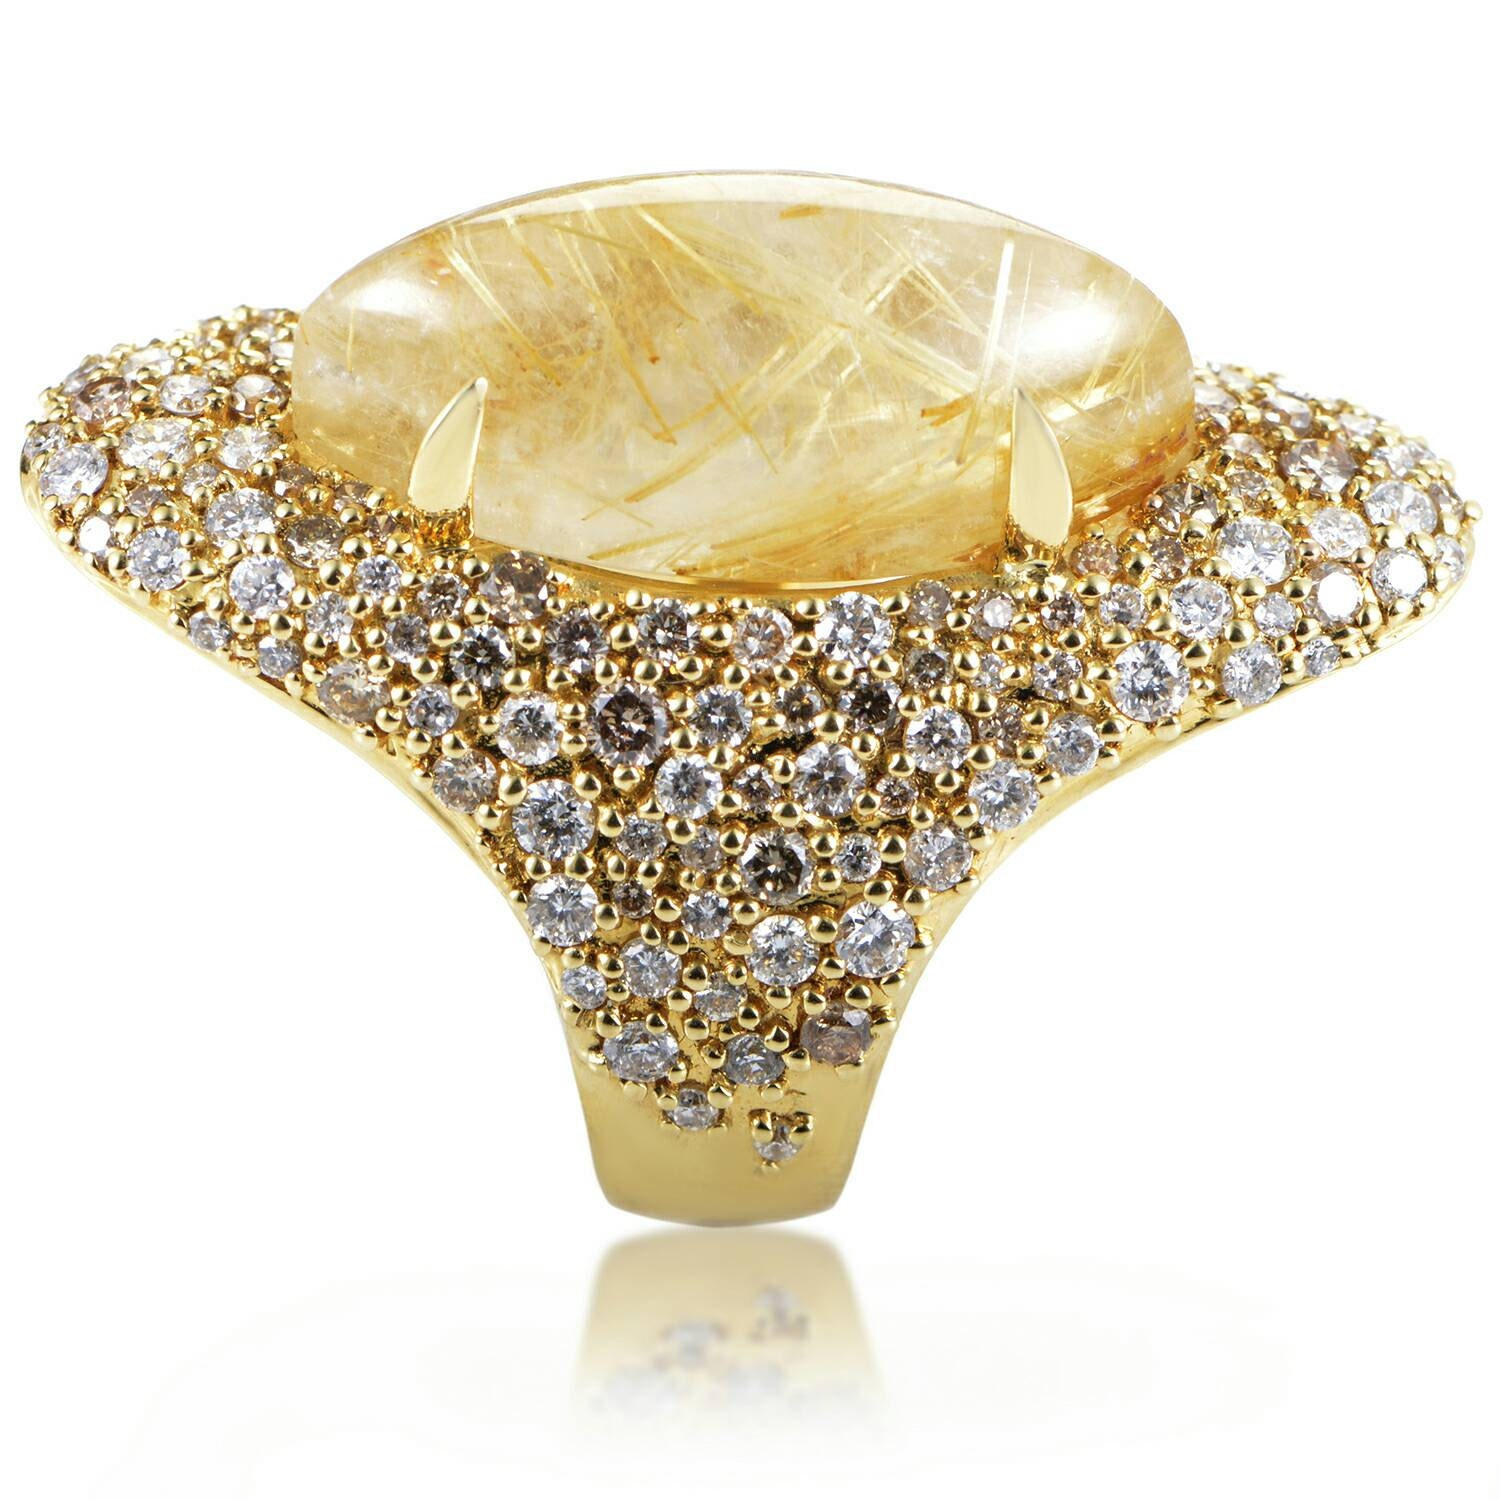 wedding alexis rings category bittar exquisite inspired online buy jewelry antique pretty